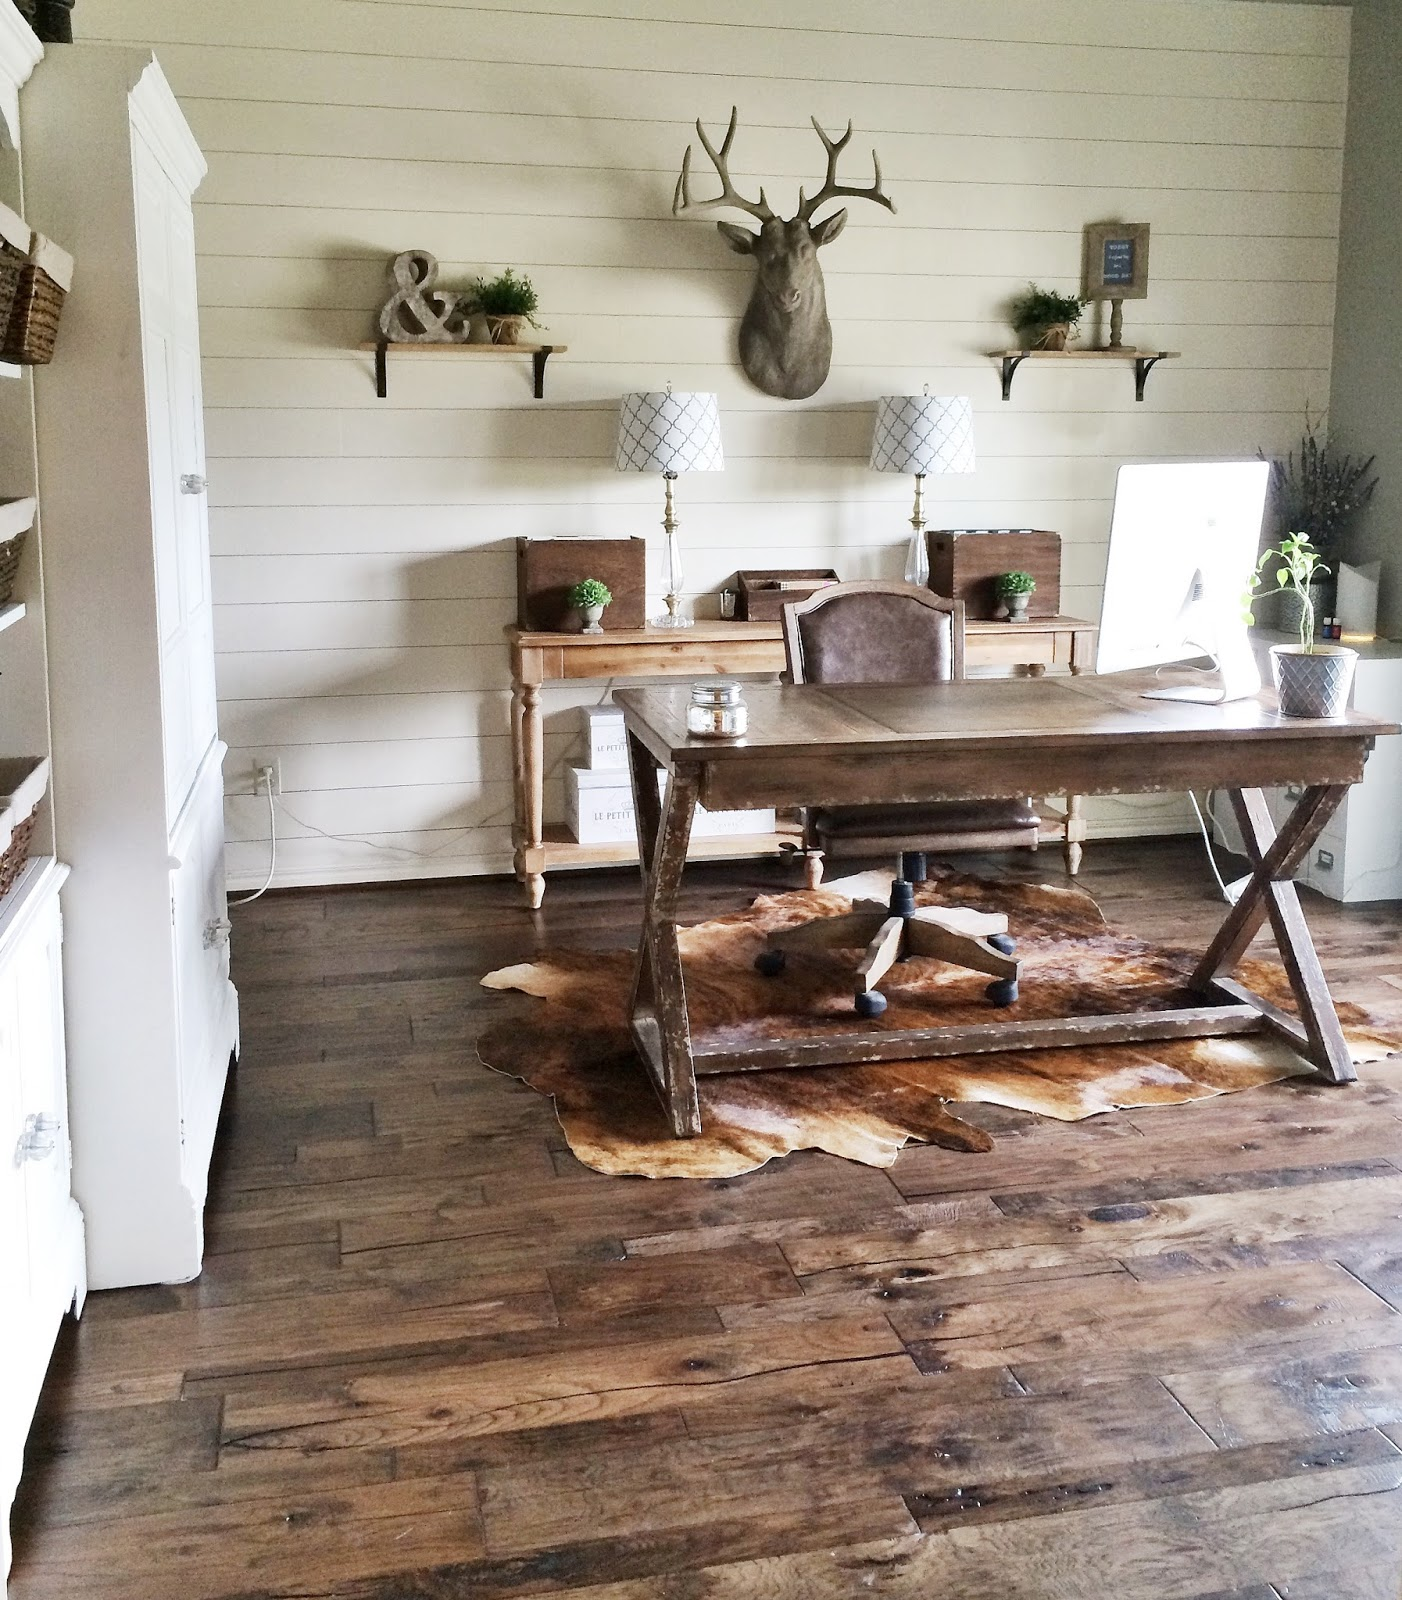 Shiplap Walls: How To Install A Shiplap Wall + Rustic